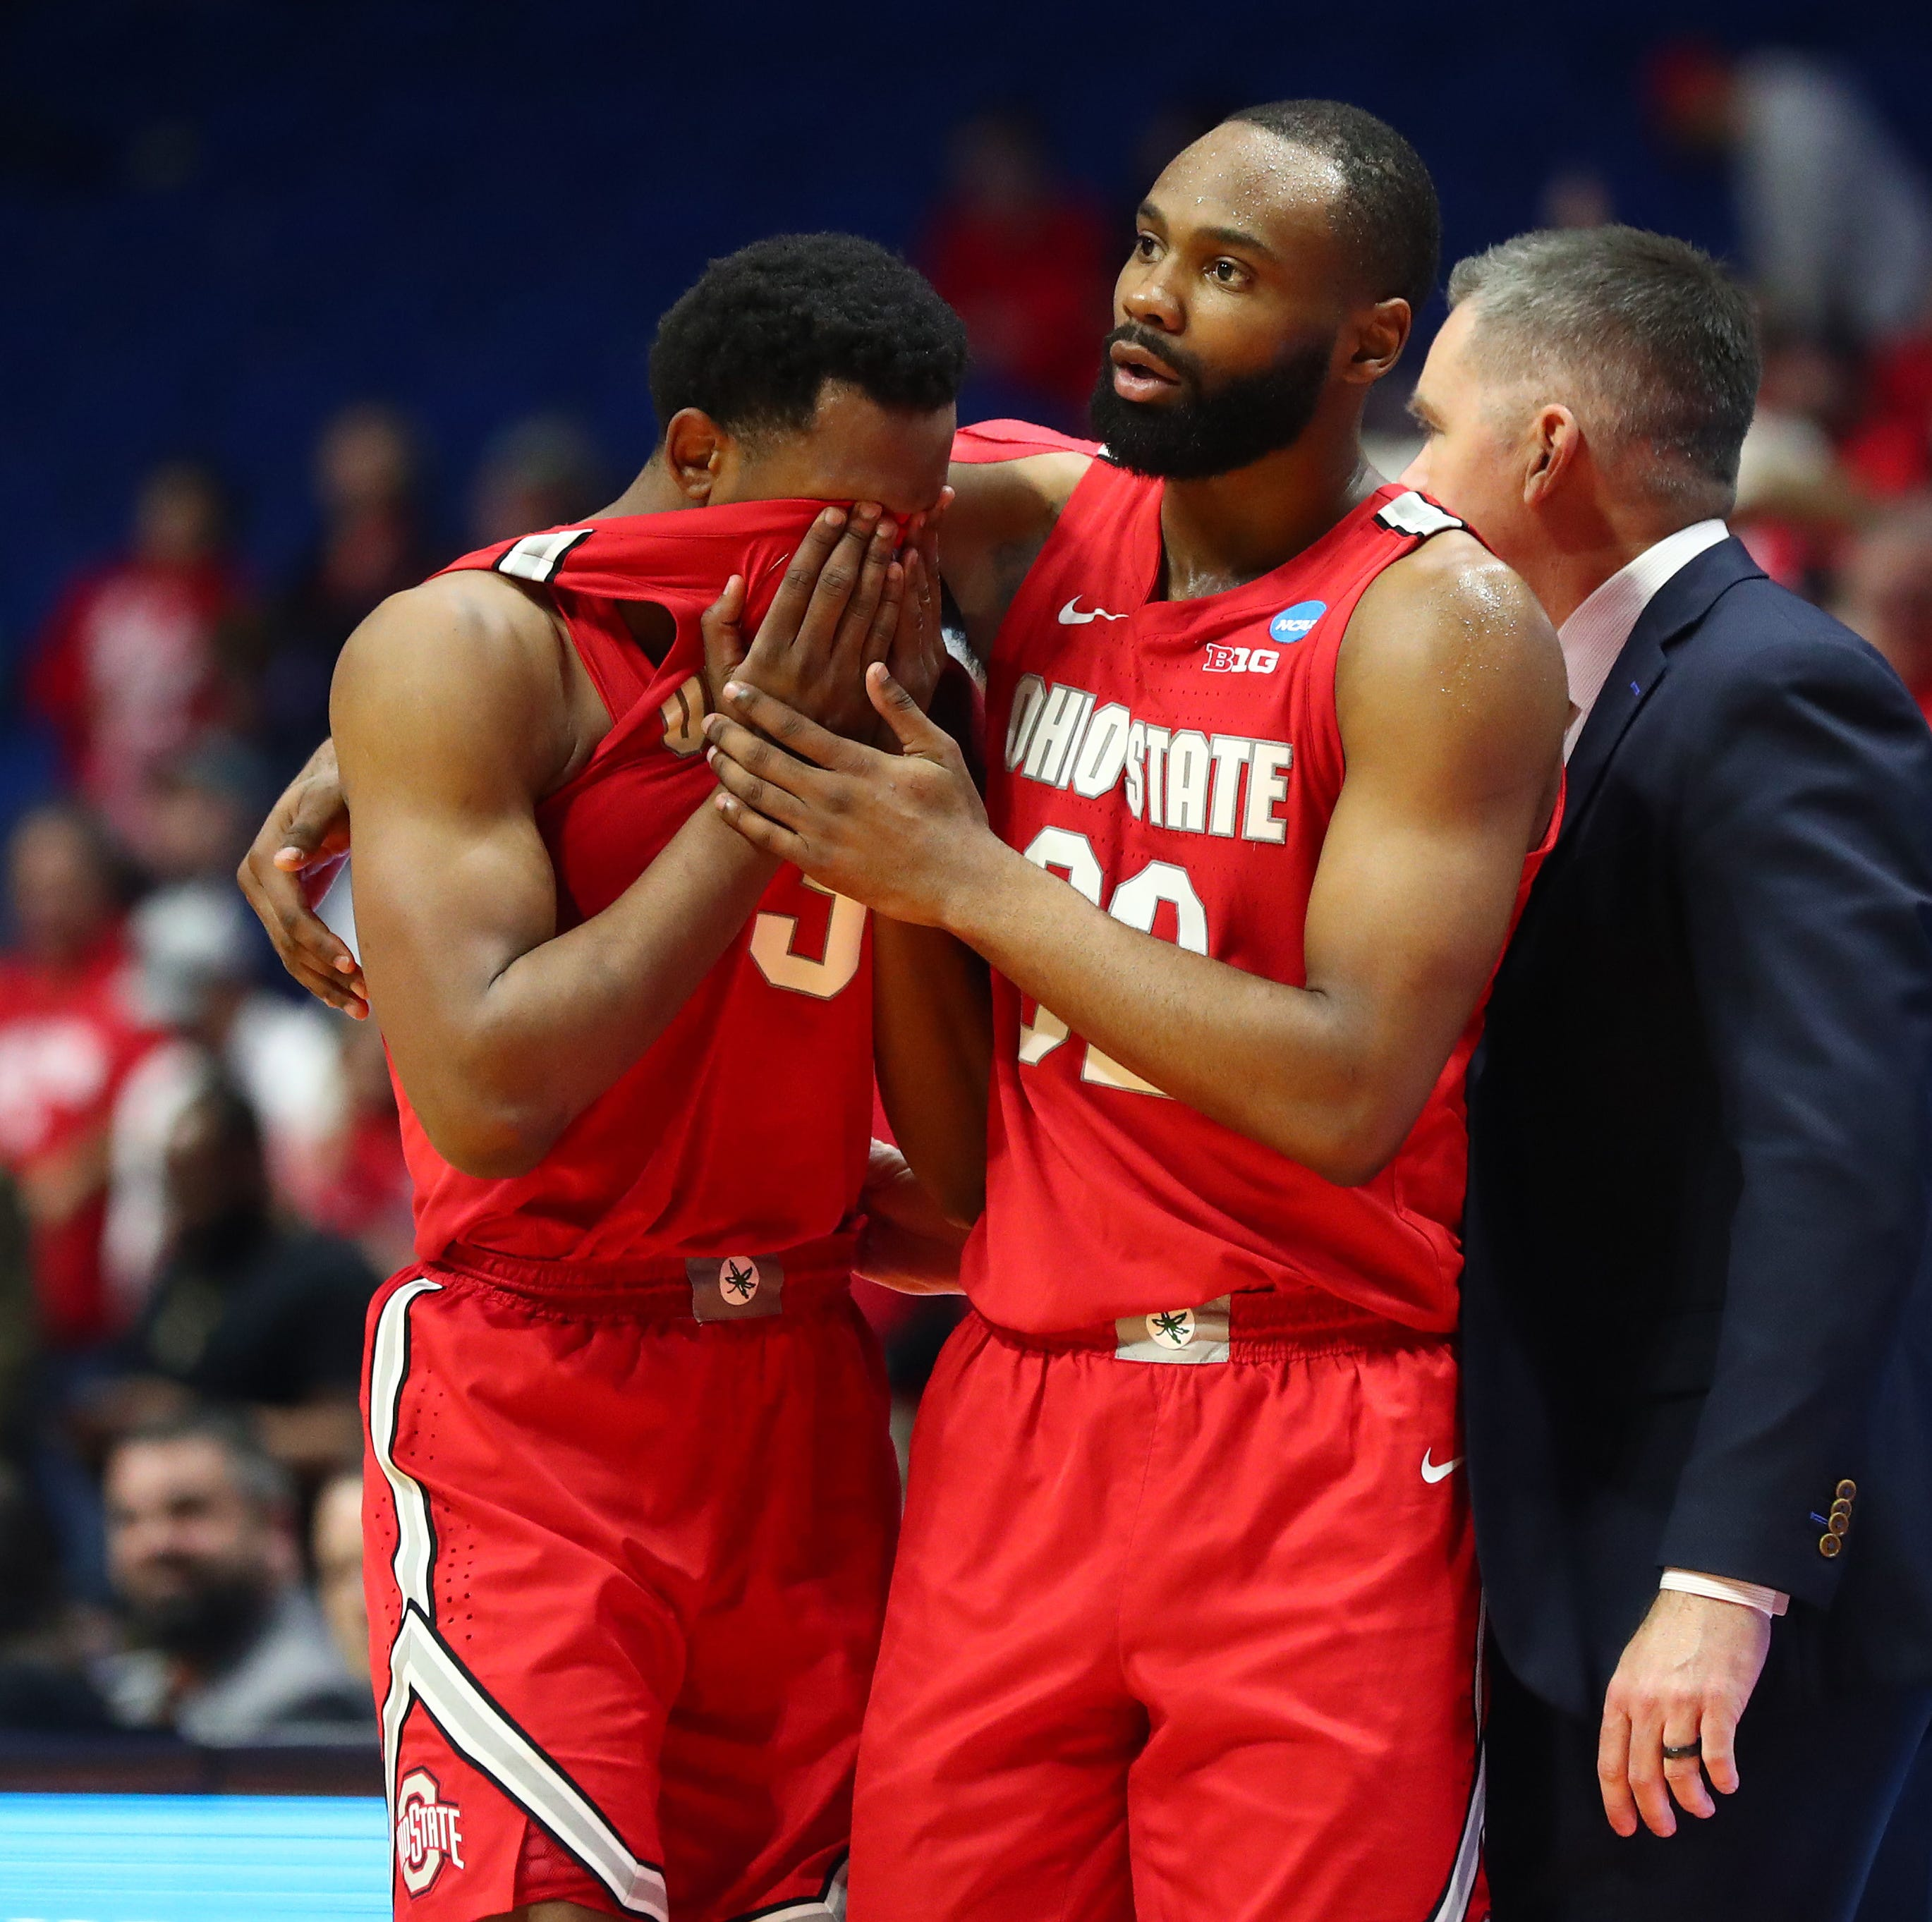 McCurdy: Better days coming for basketball Buckeyes